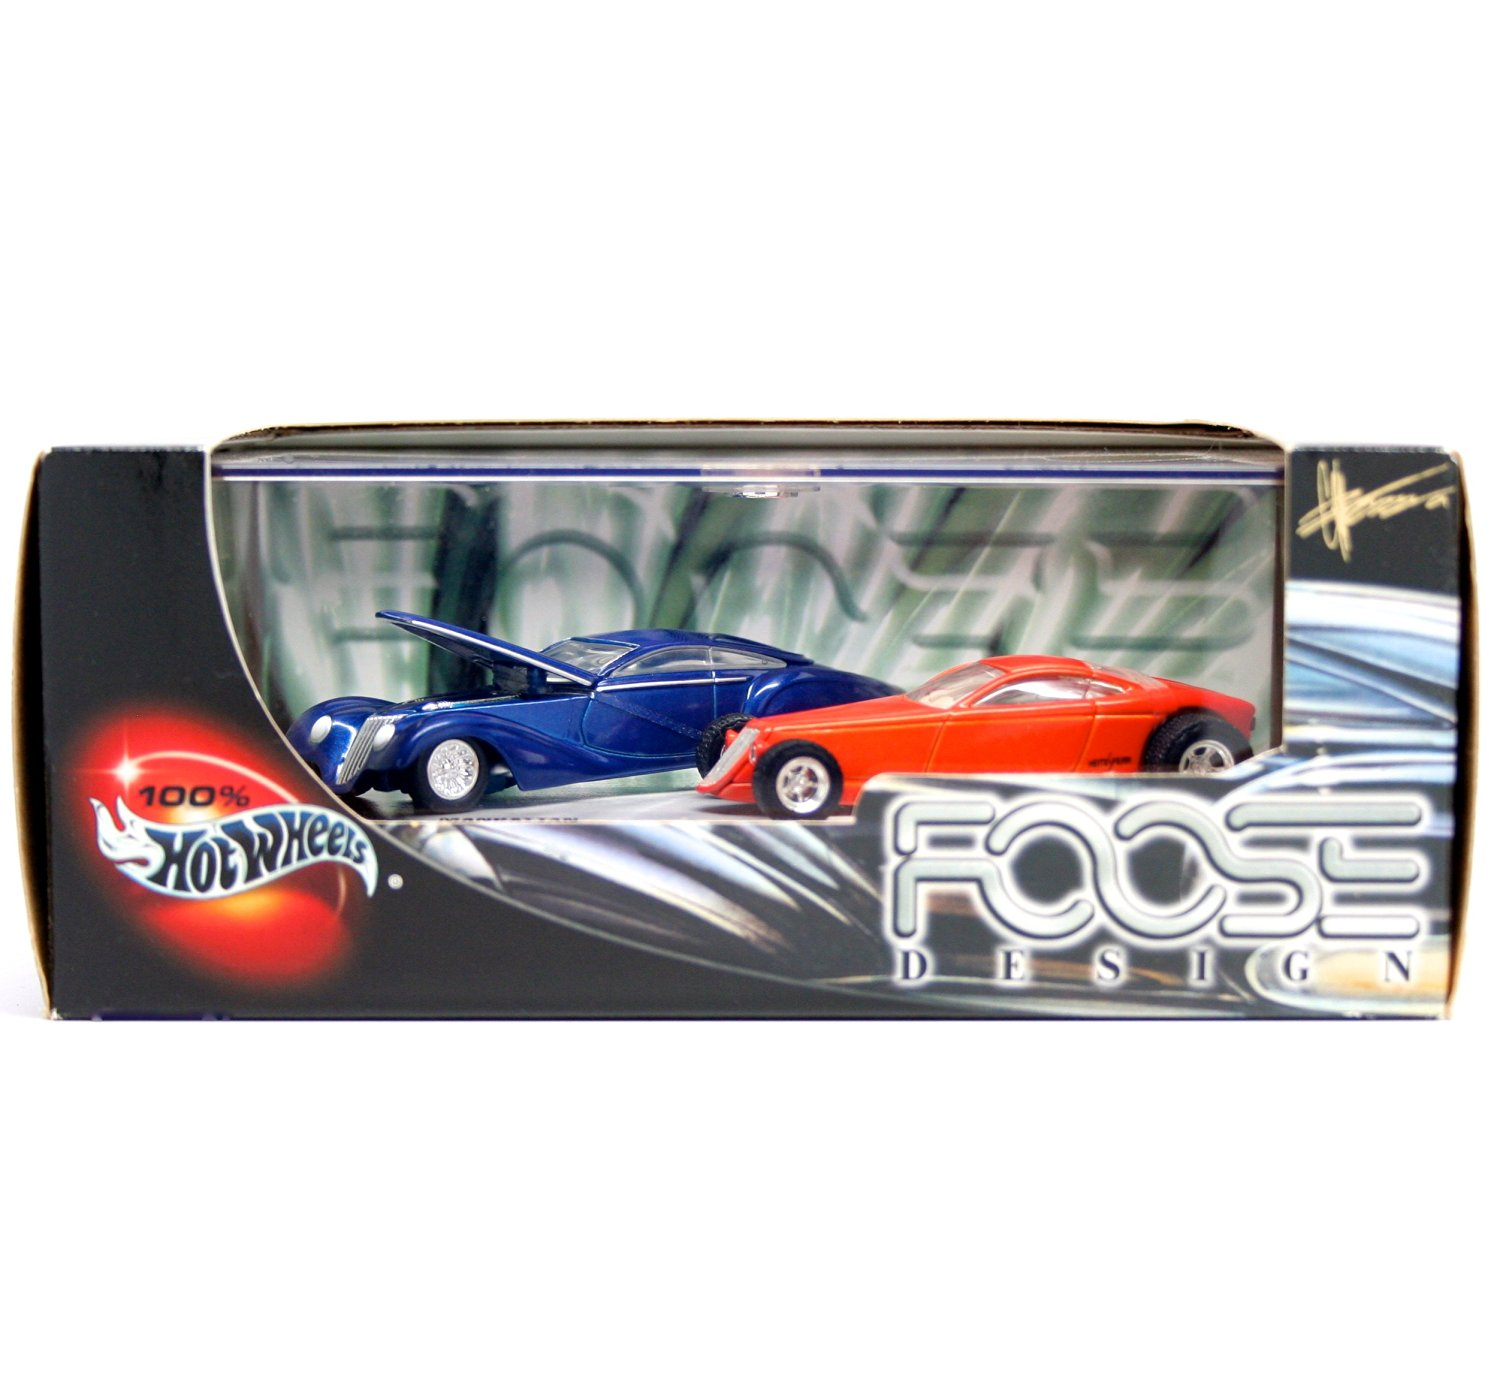 MANHATTAN & HEMISFEAR * Limited Edition * Hot Wheels 2001 FOOSE DESIGN 1:64 Scale 2-Car Custom Vehicle Box Set